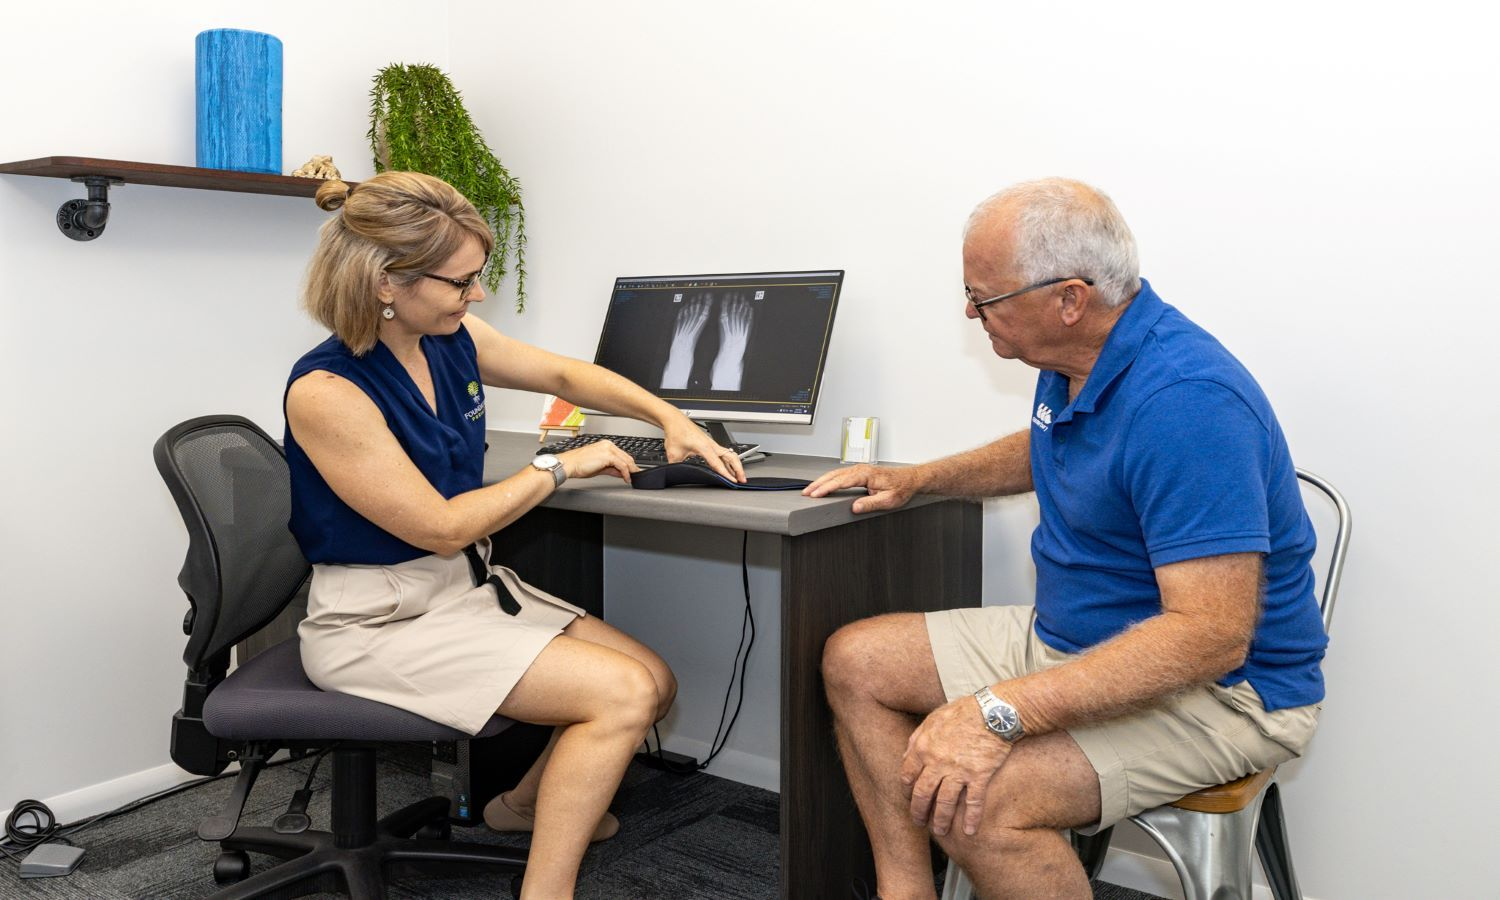 Posterior Tibialis Tendon Dysfunction (PTTD) – Acquired Adult Flat Foot